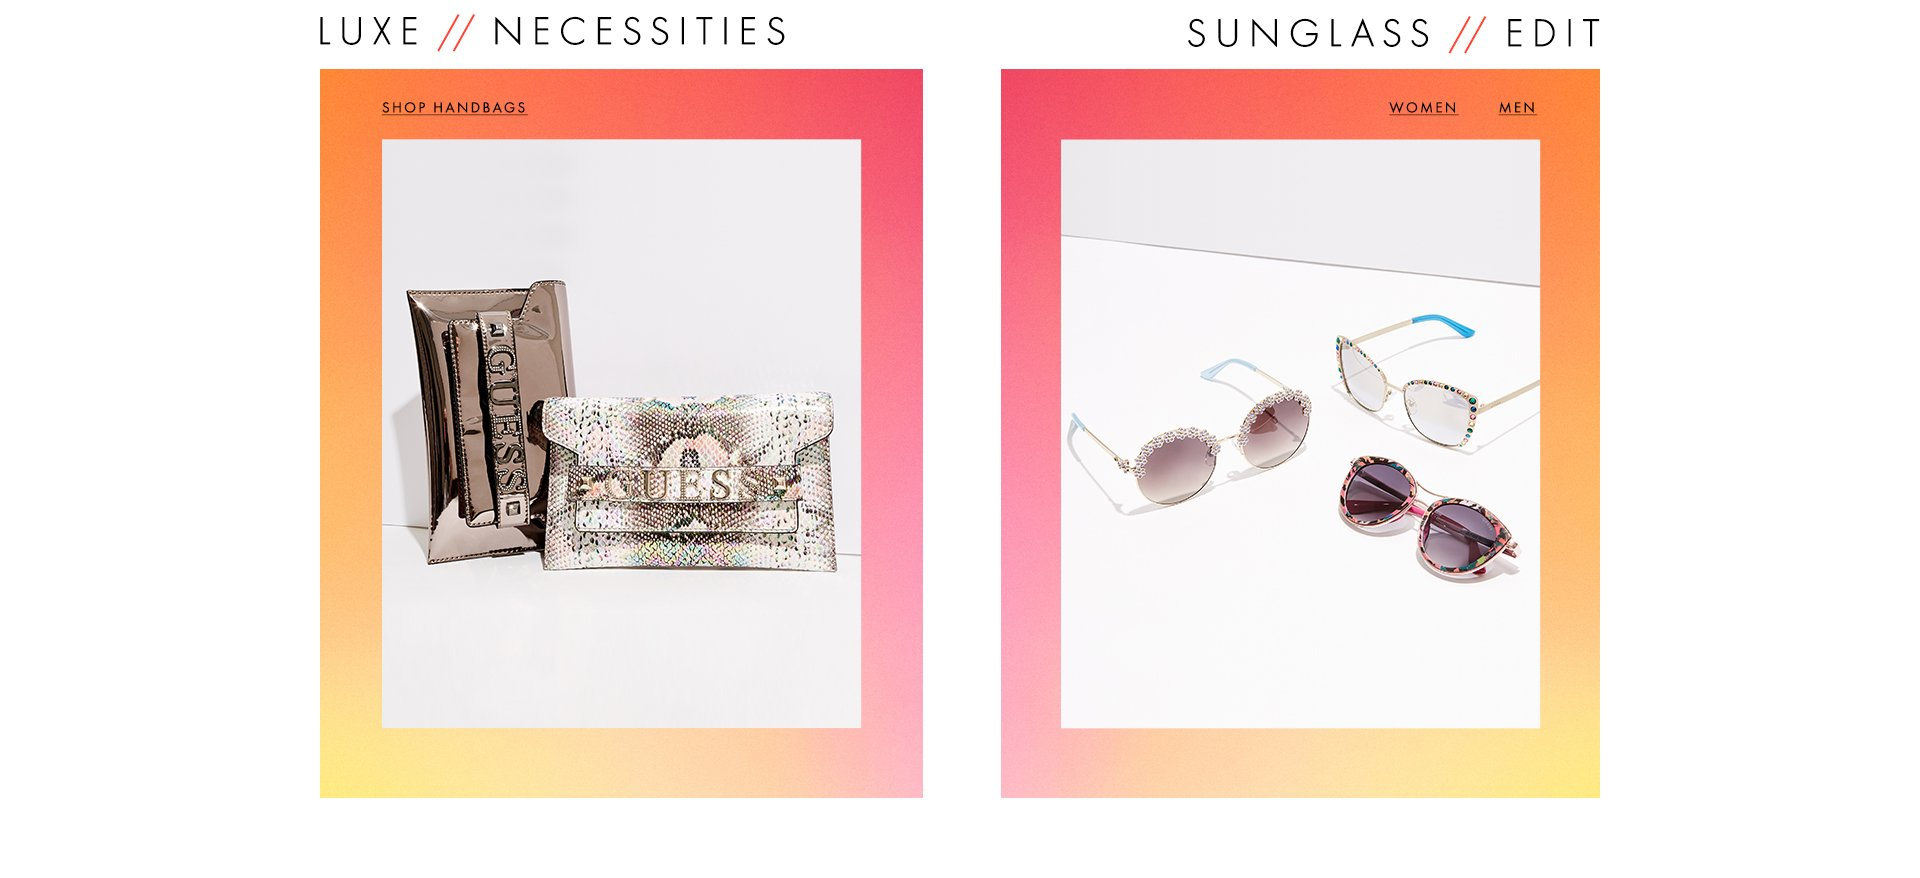 Handbags, wallets and sunglasses